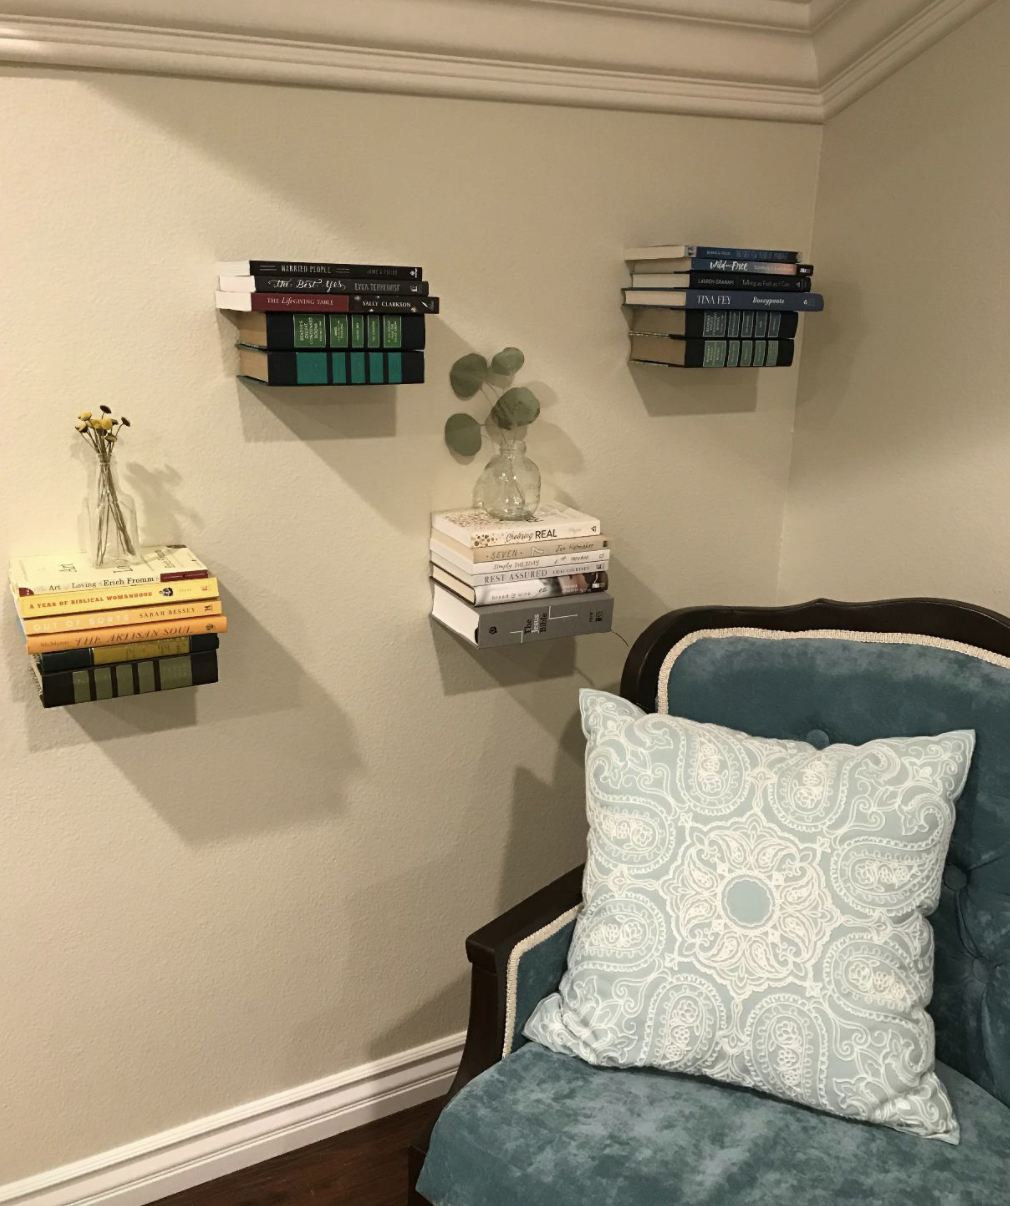 A customer review photo of their floating bookshelves on a wall next to a chair